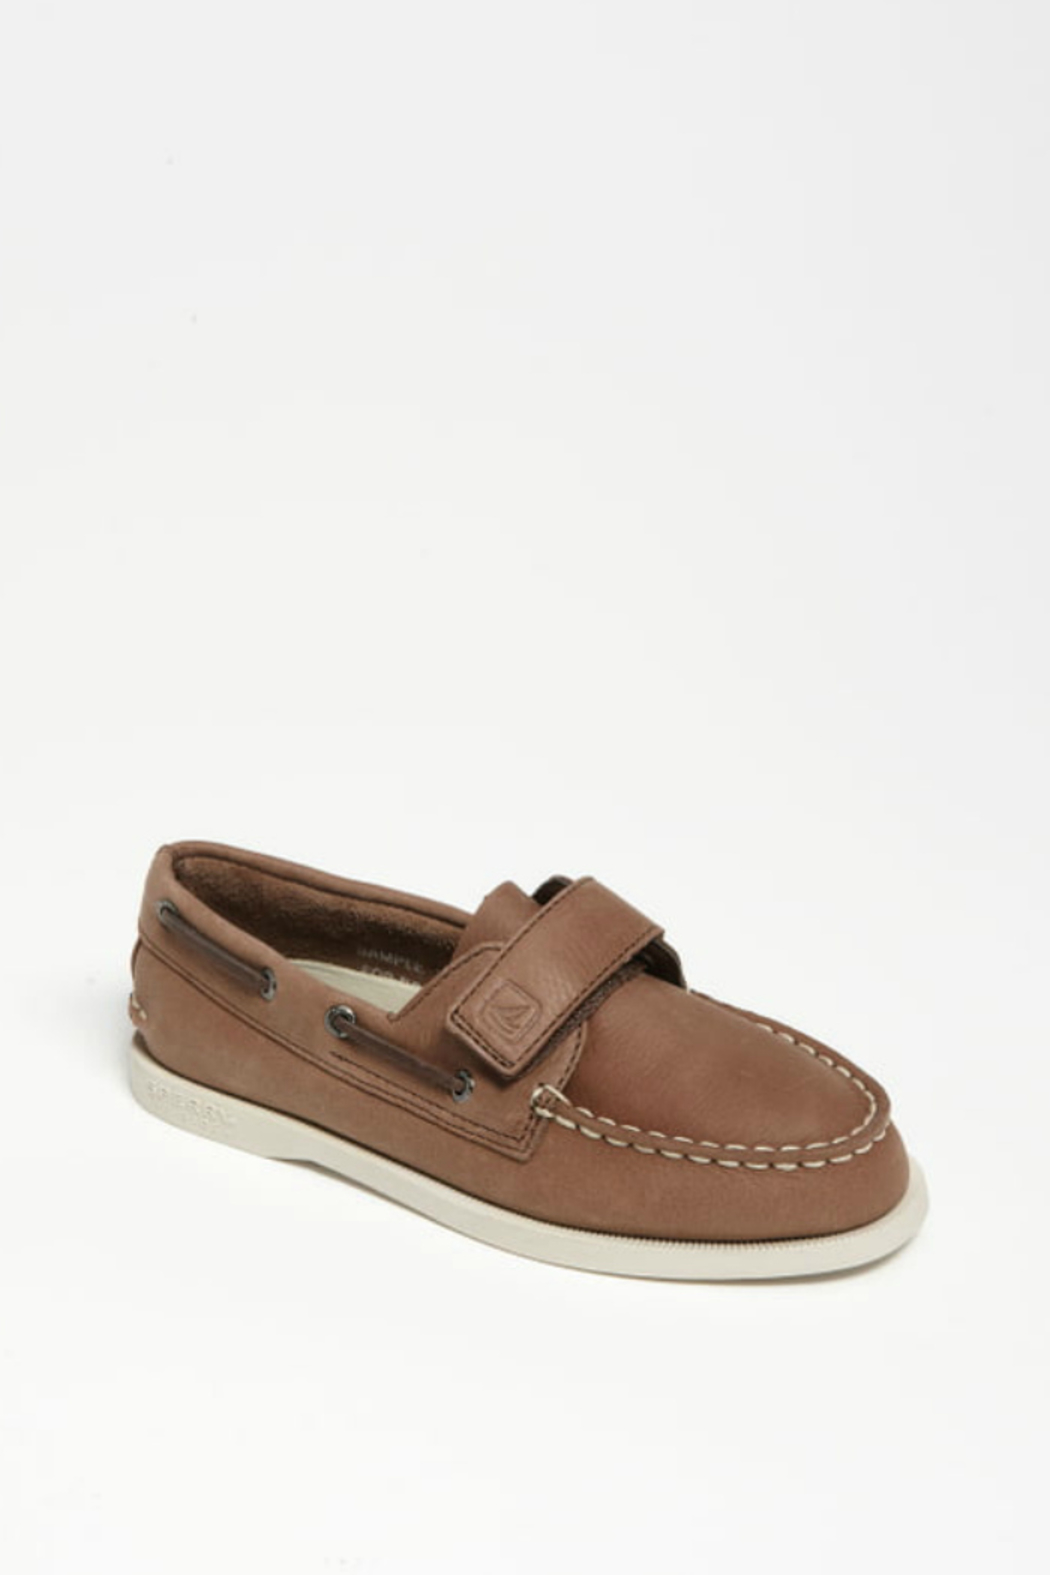 Sperry SPERRY A/O HL KIDS - Main Image